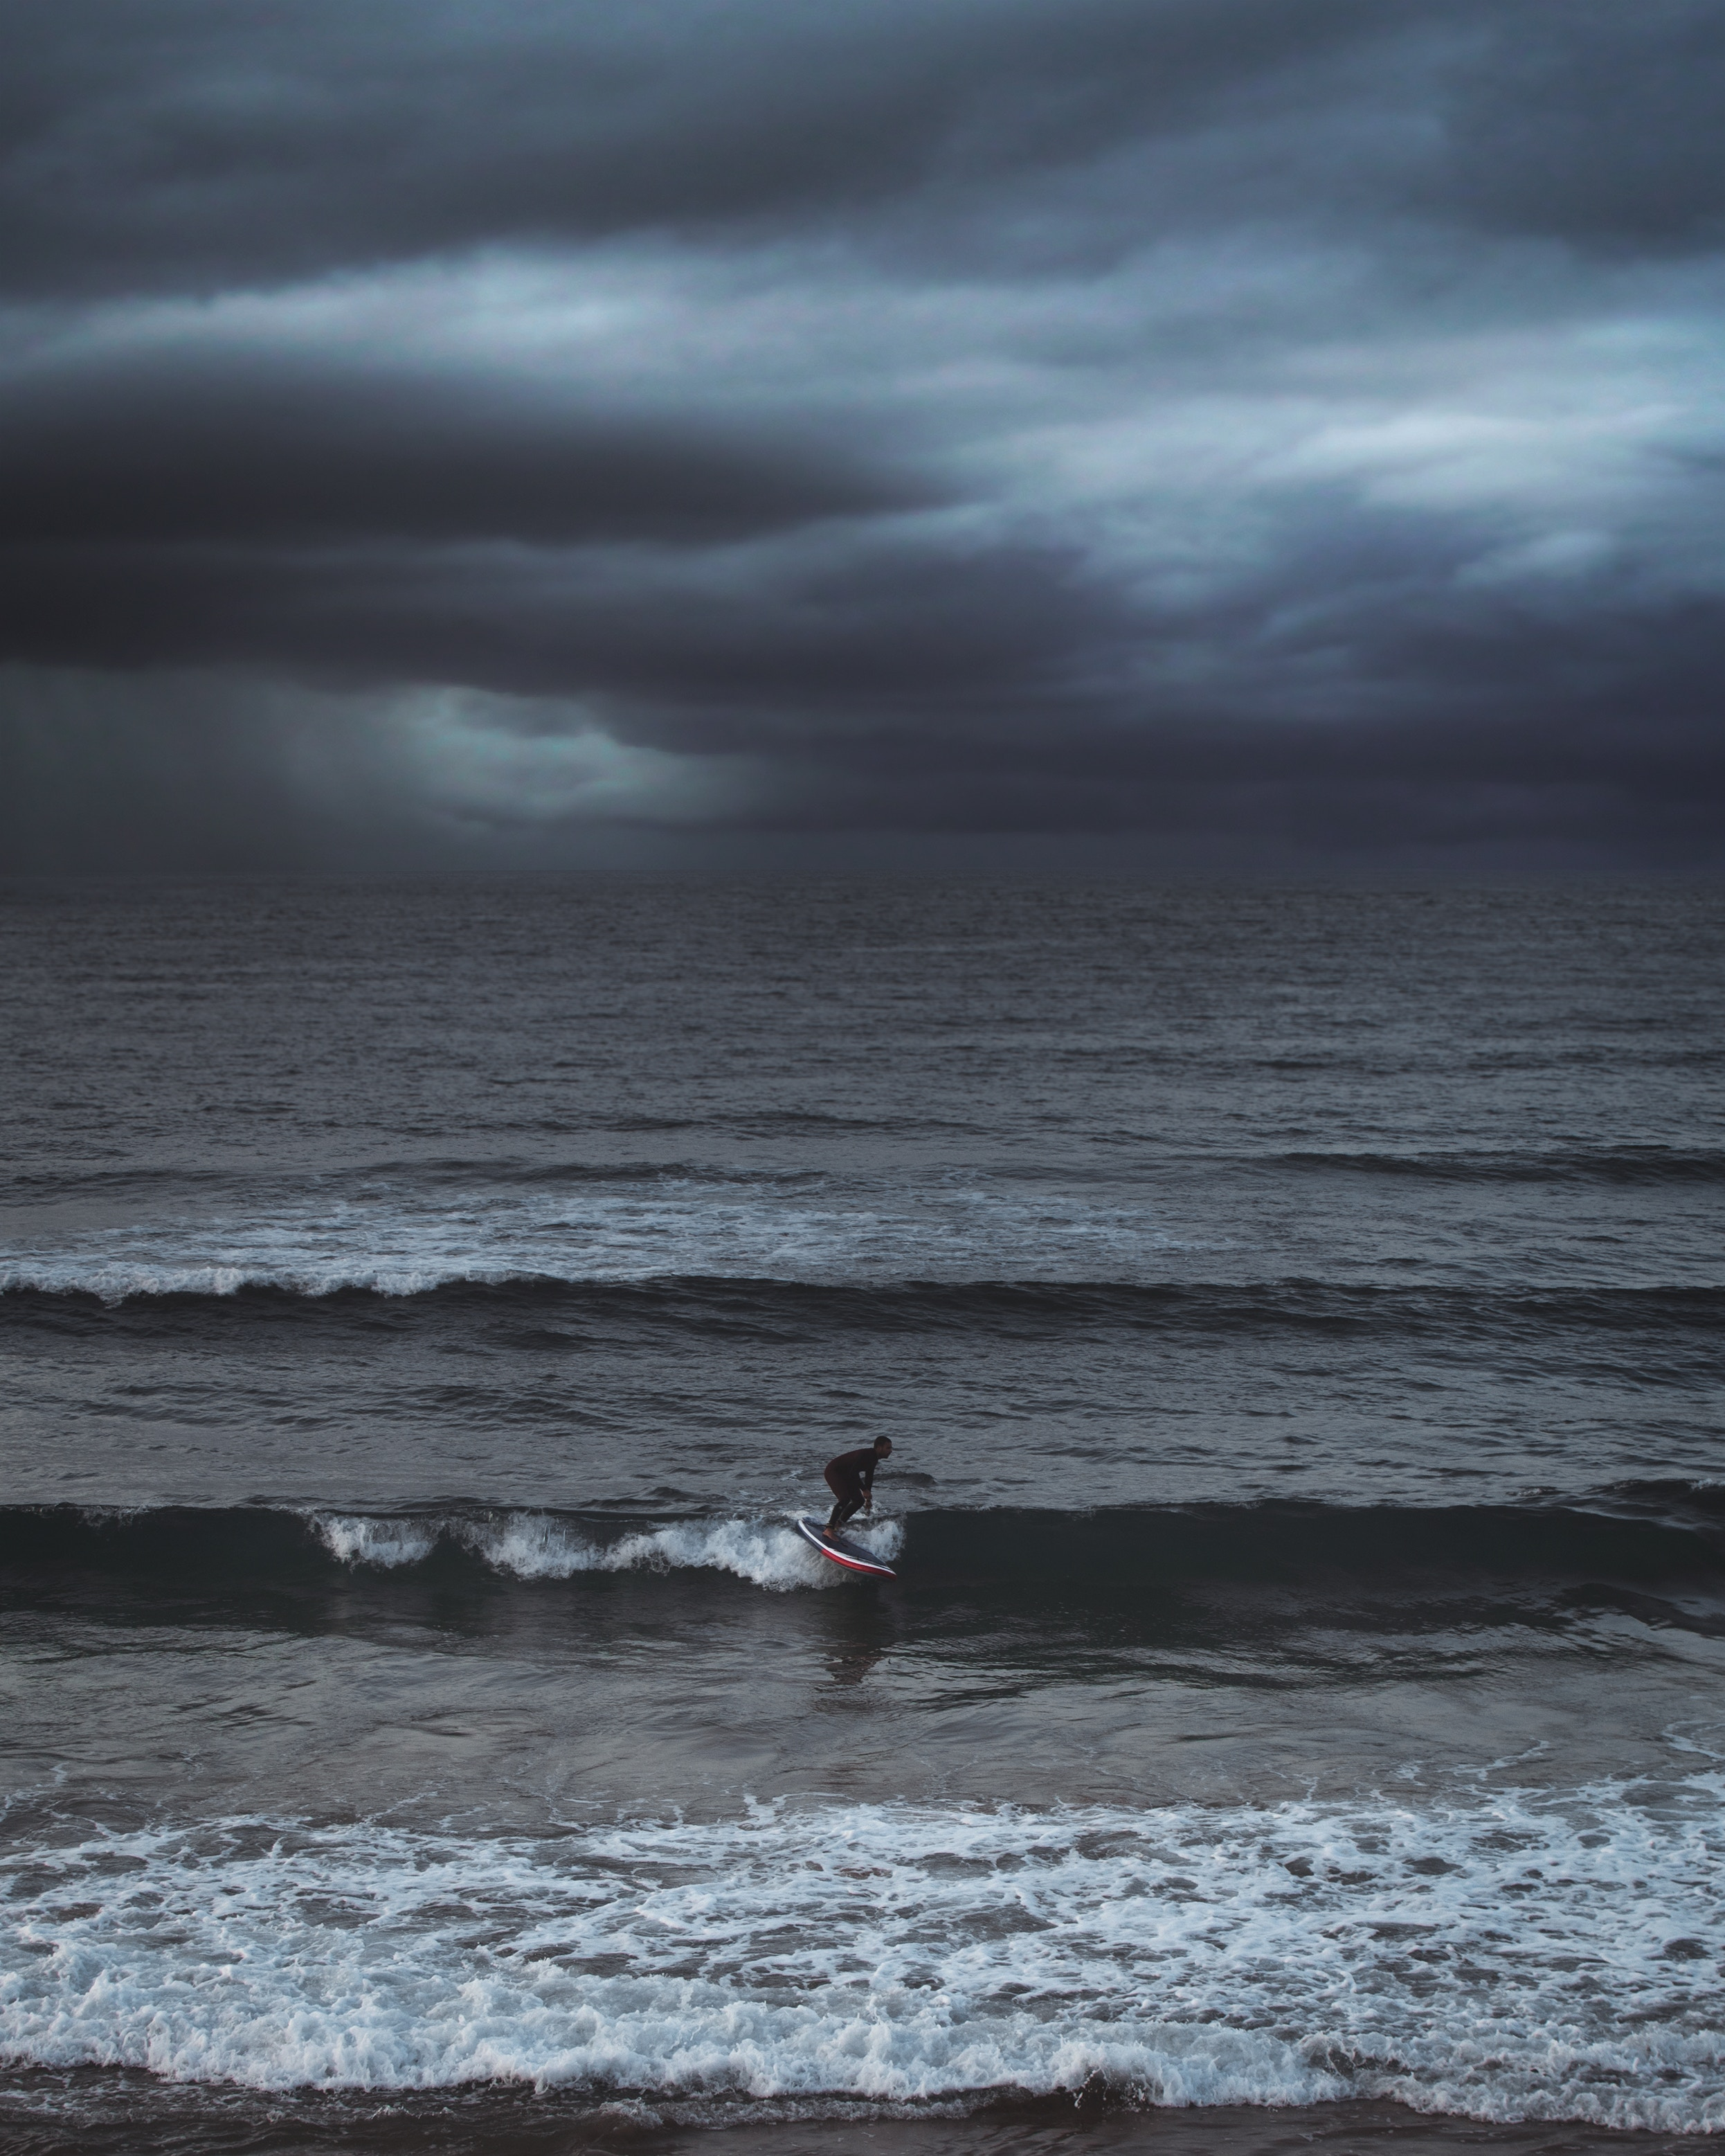 133465 download wallpaper Sports, Surfer, Serfing, Sea, Ocean, Mainly Cloudy, Overcast, Waves screensavers and pictures for free